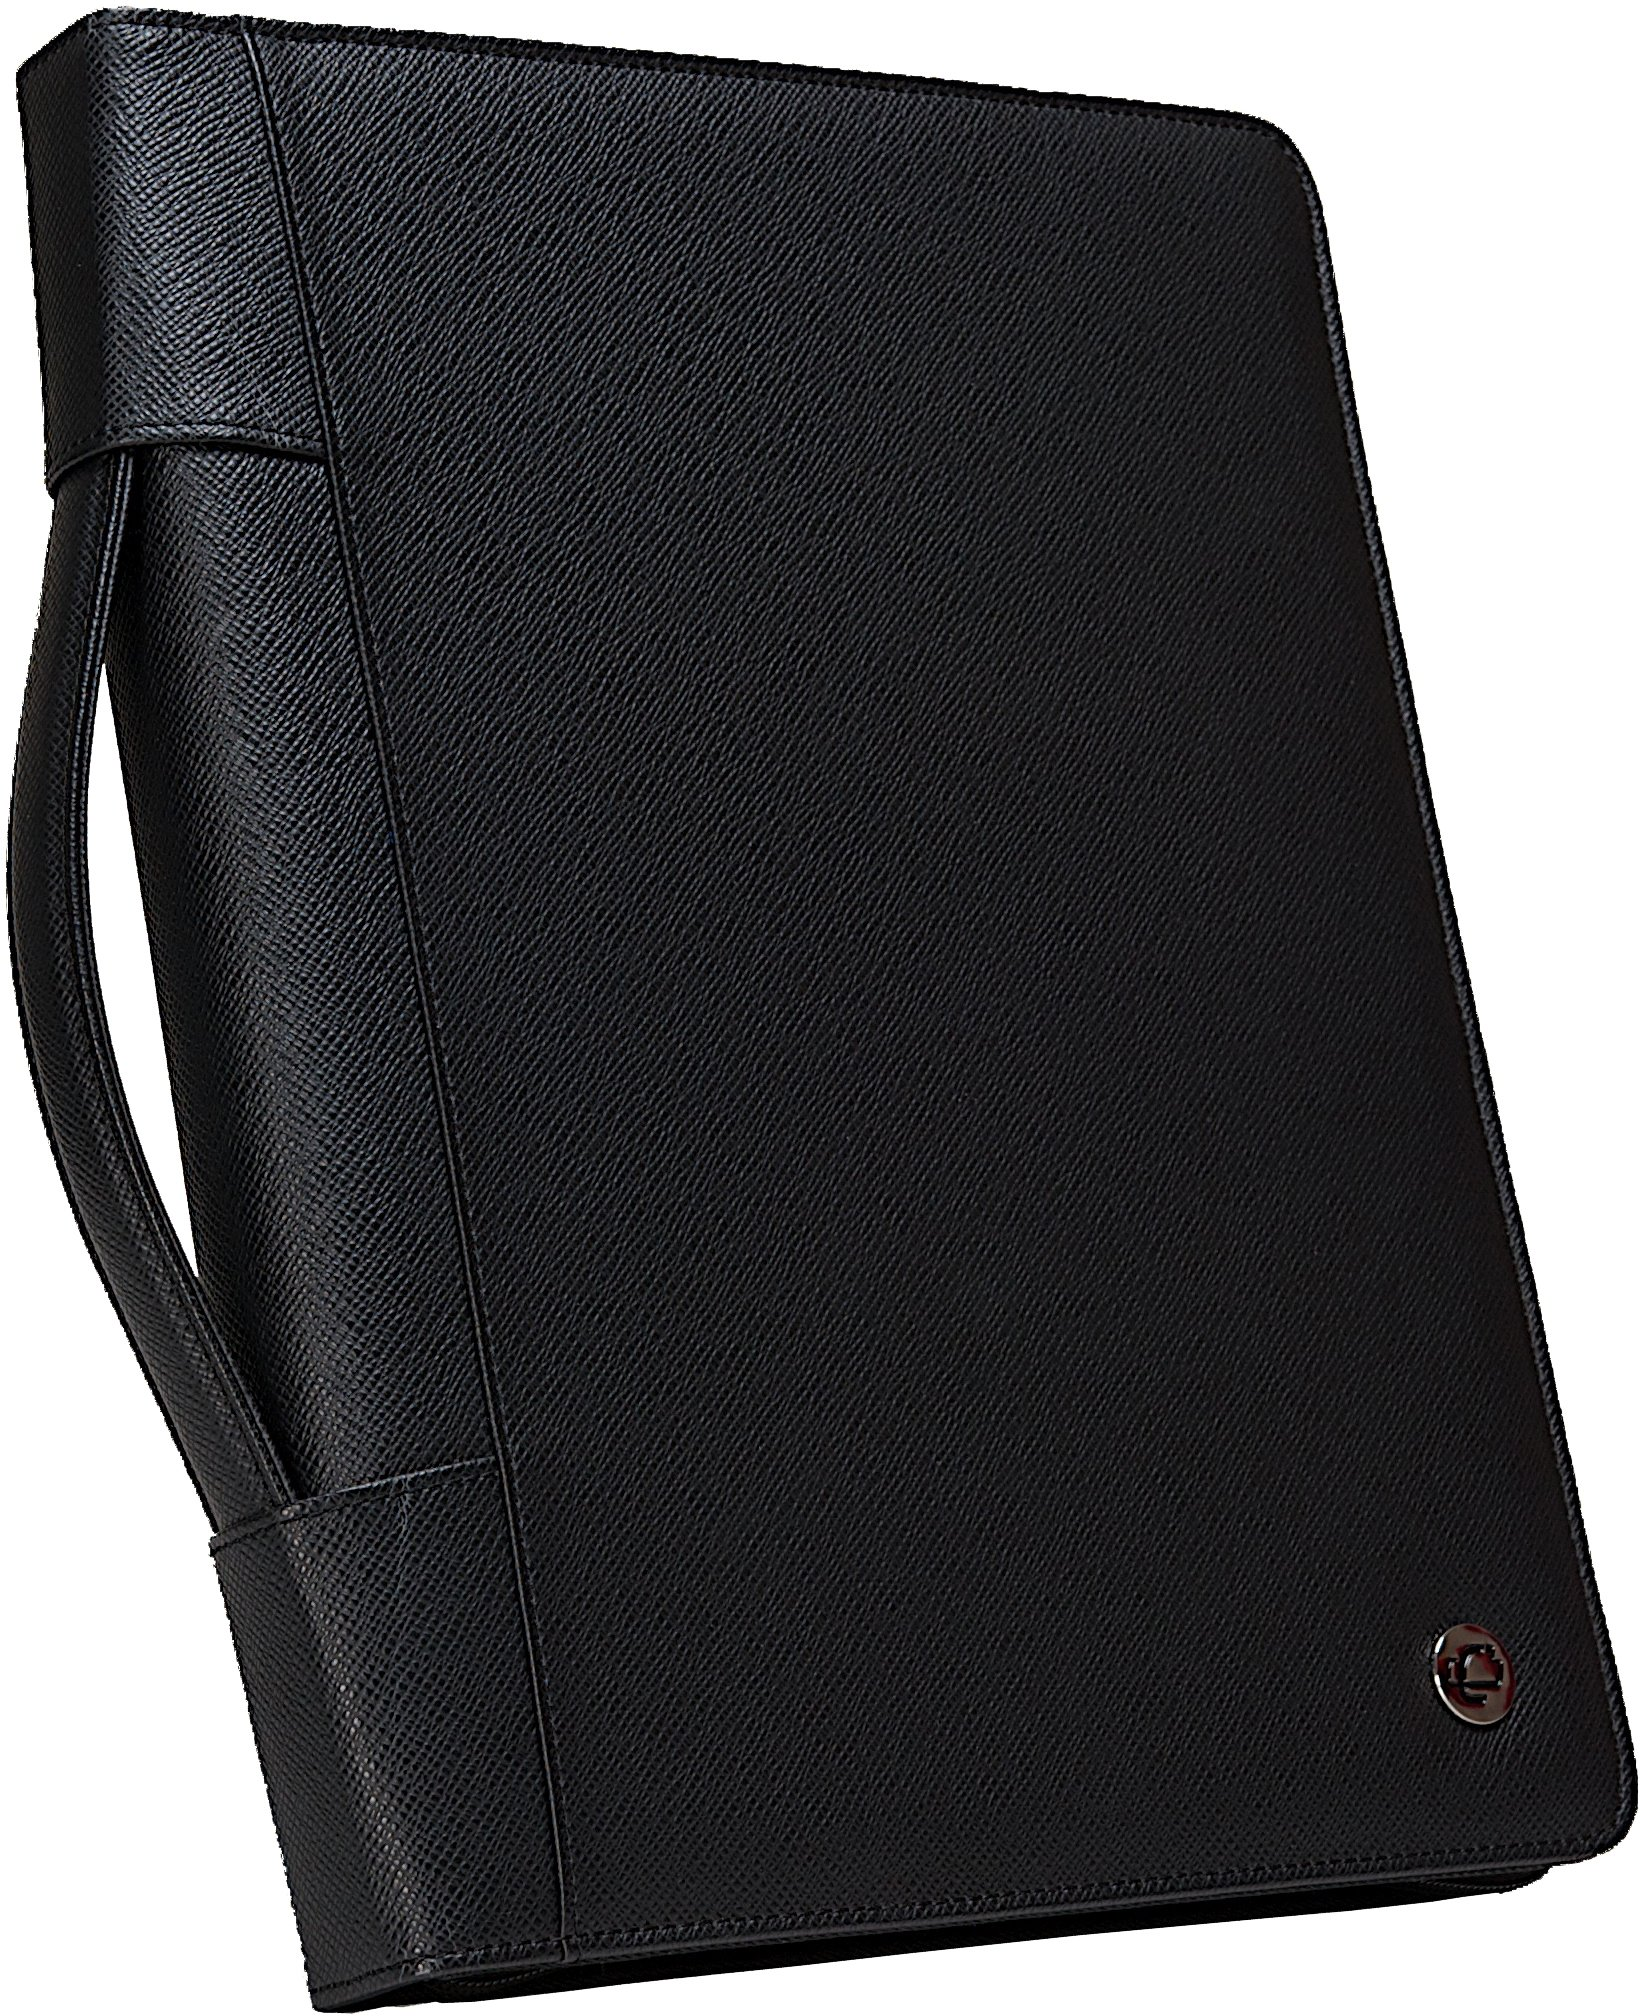 Case-It Executive Zippered Padfolio With Removable 3-Ring Binder And Letter S.. 10